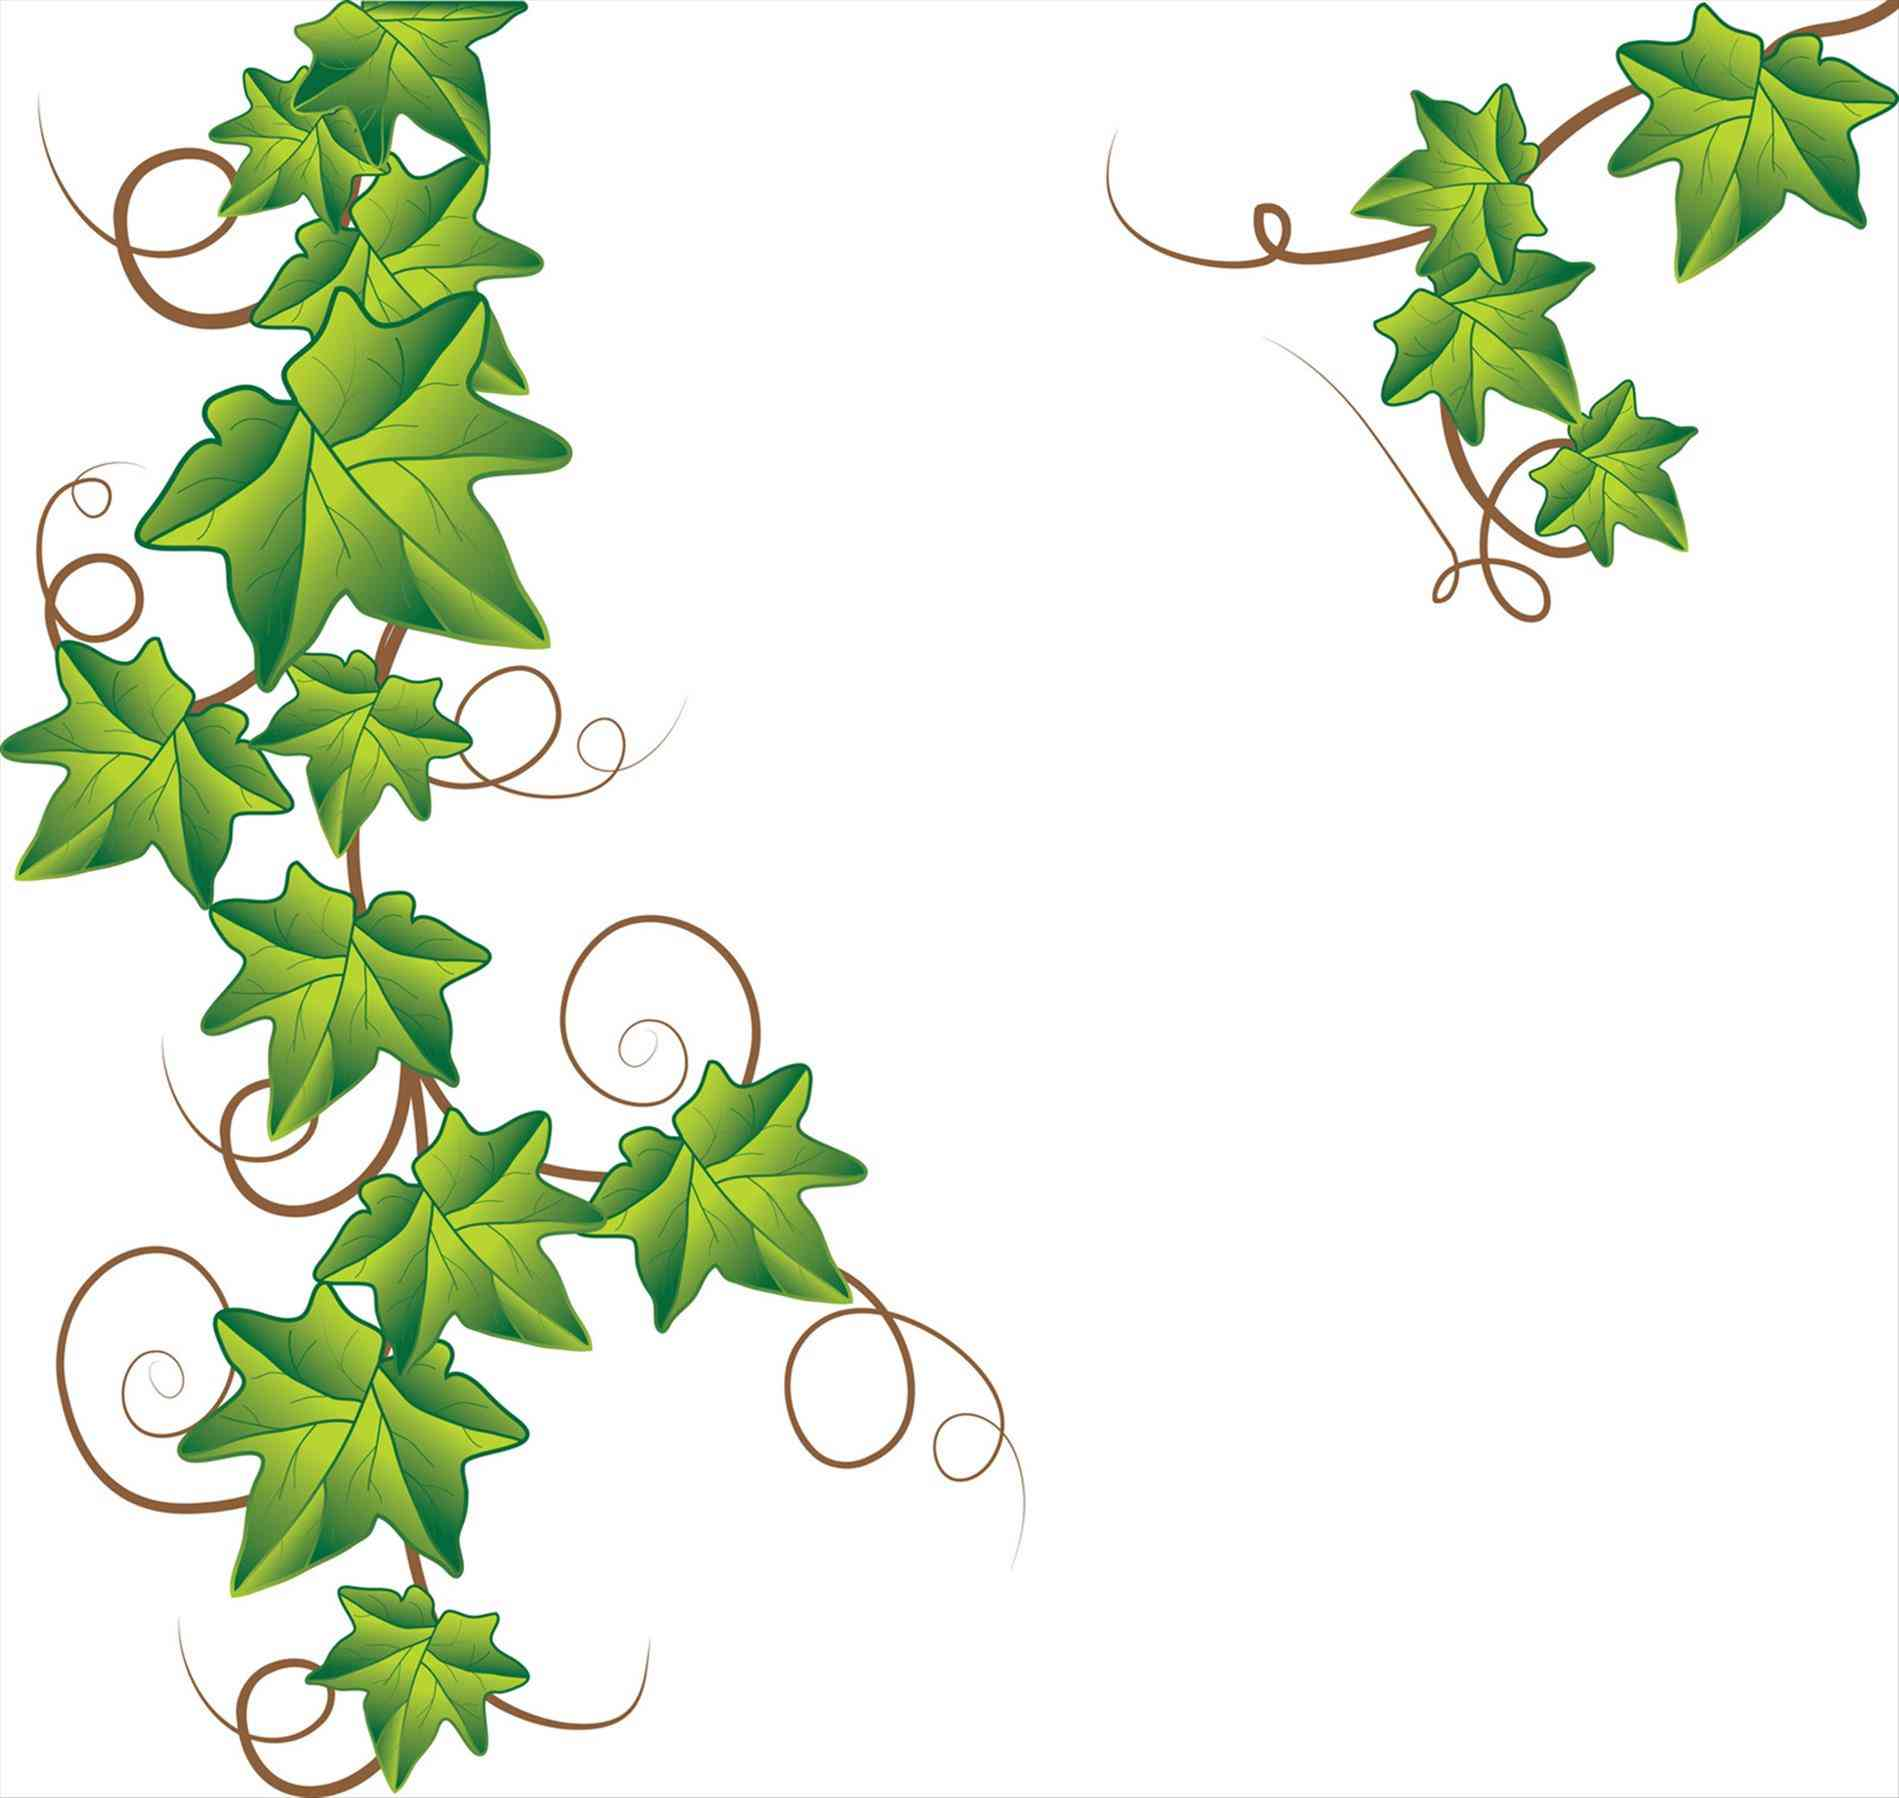 1899x1798 And White Vine Tattoo Designs Image Vector Clip Art Online Flower